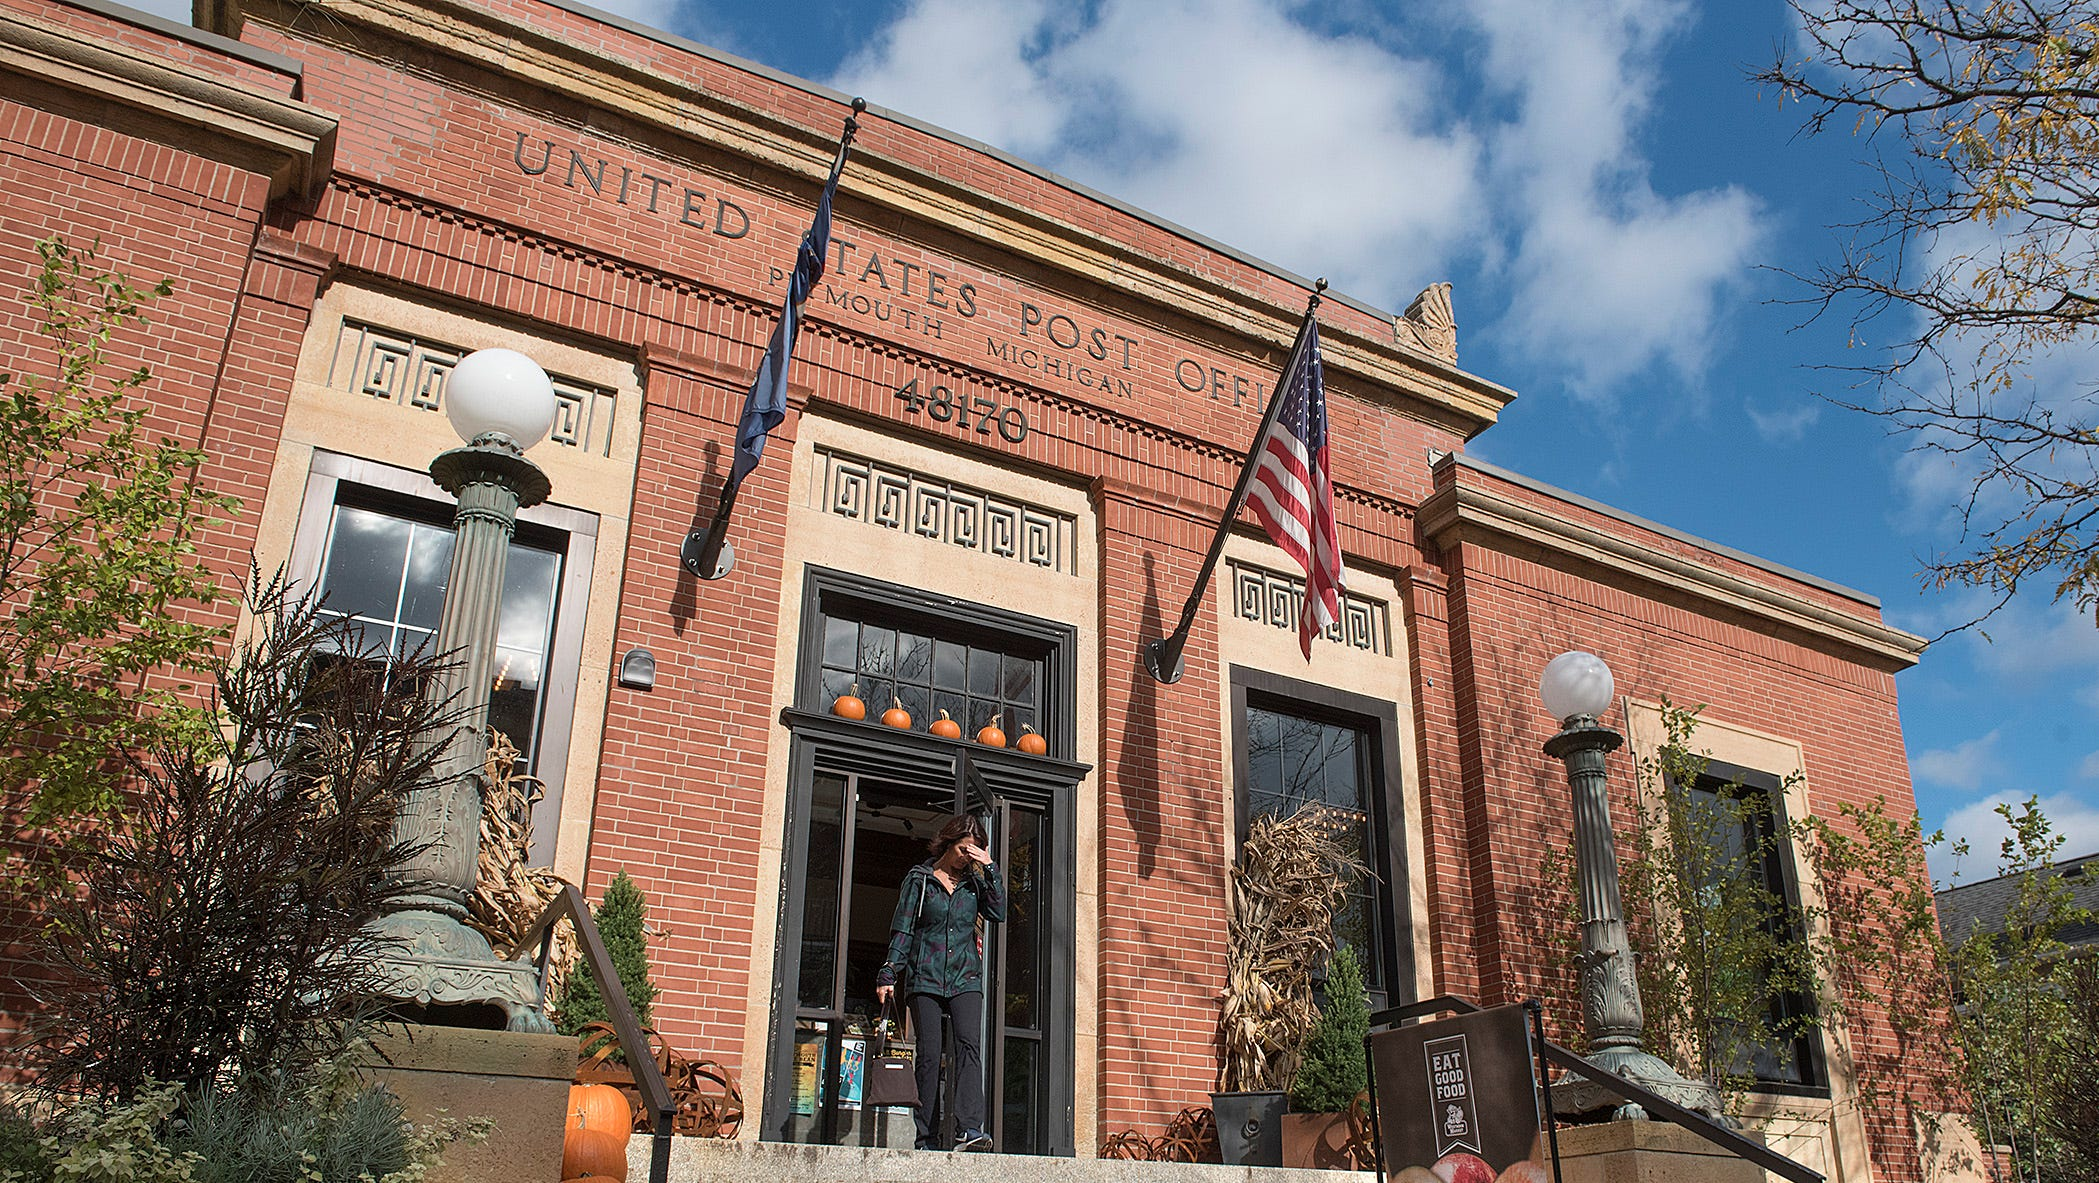 Westborn Market is honored by the Michigan Downtown Association for its preservation of historical details in the redevelopment of the old U.S. Post Office in Plymouth.